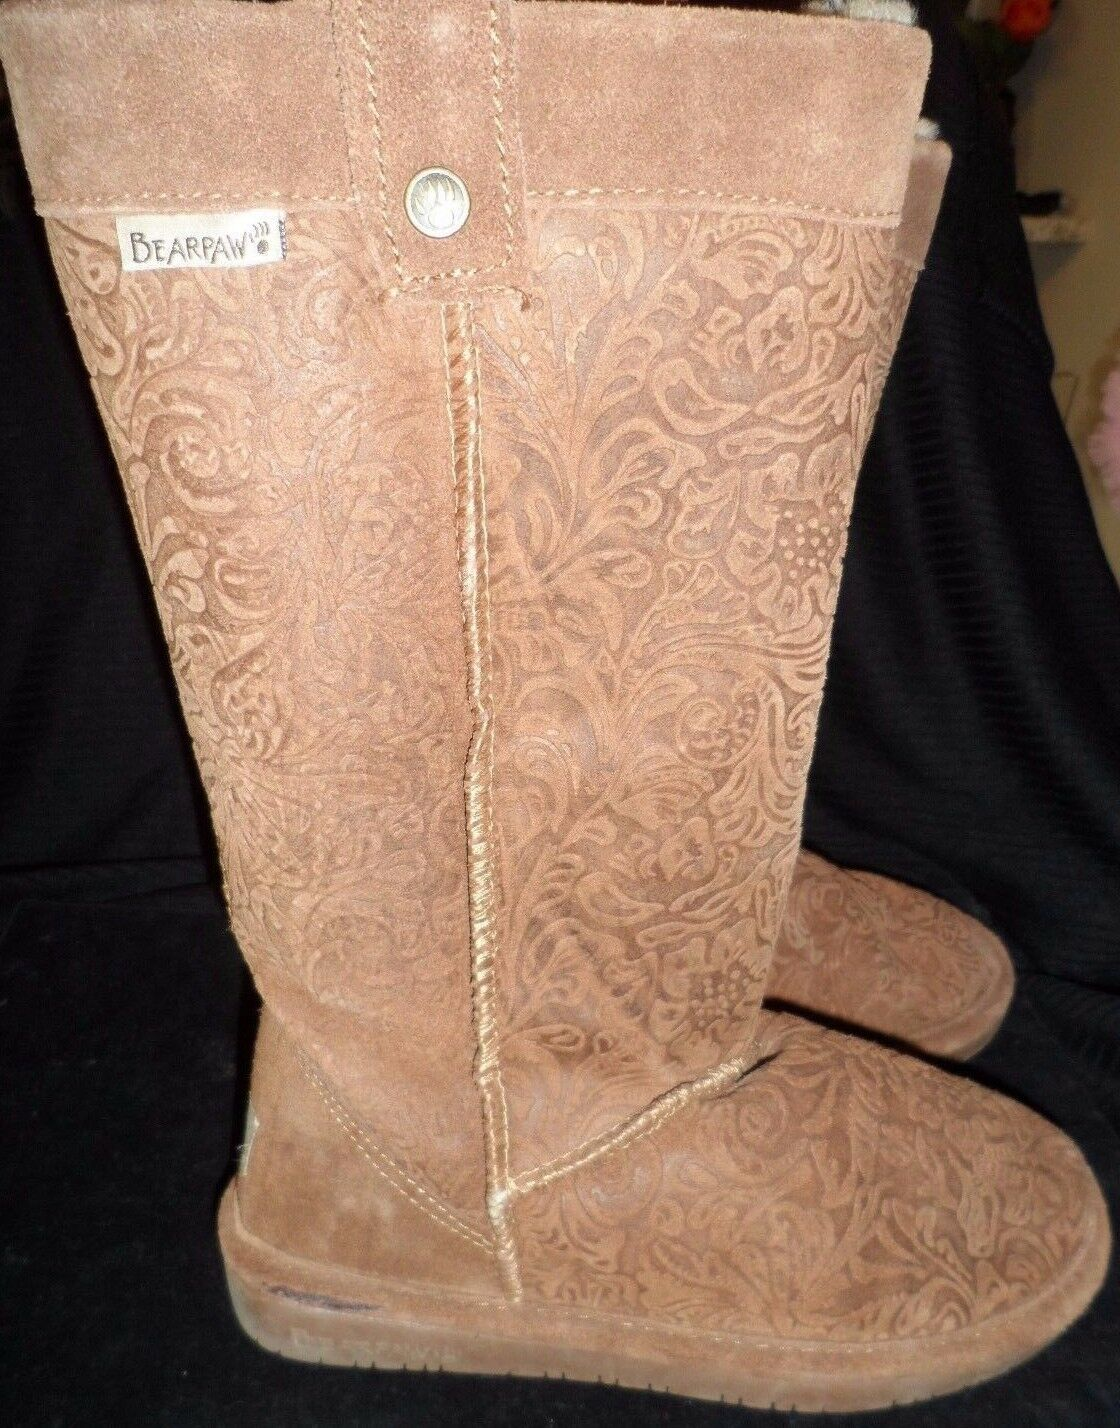 Bearpaw 6 Boots Brown Chestnut Paisley Floral Suede Sheepskin Wool Warm Tall EUC